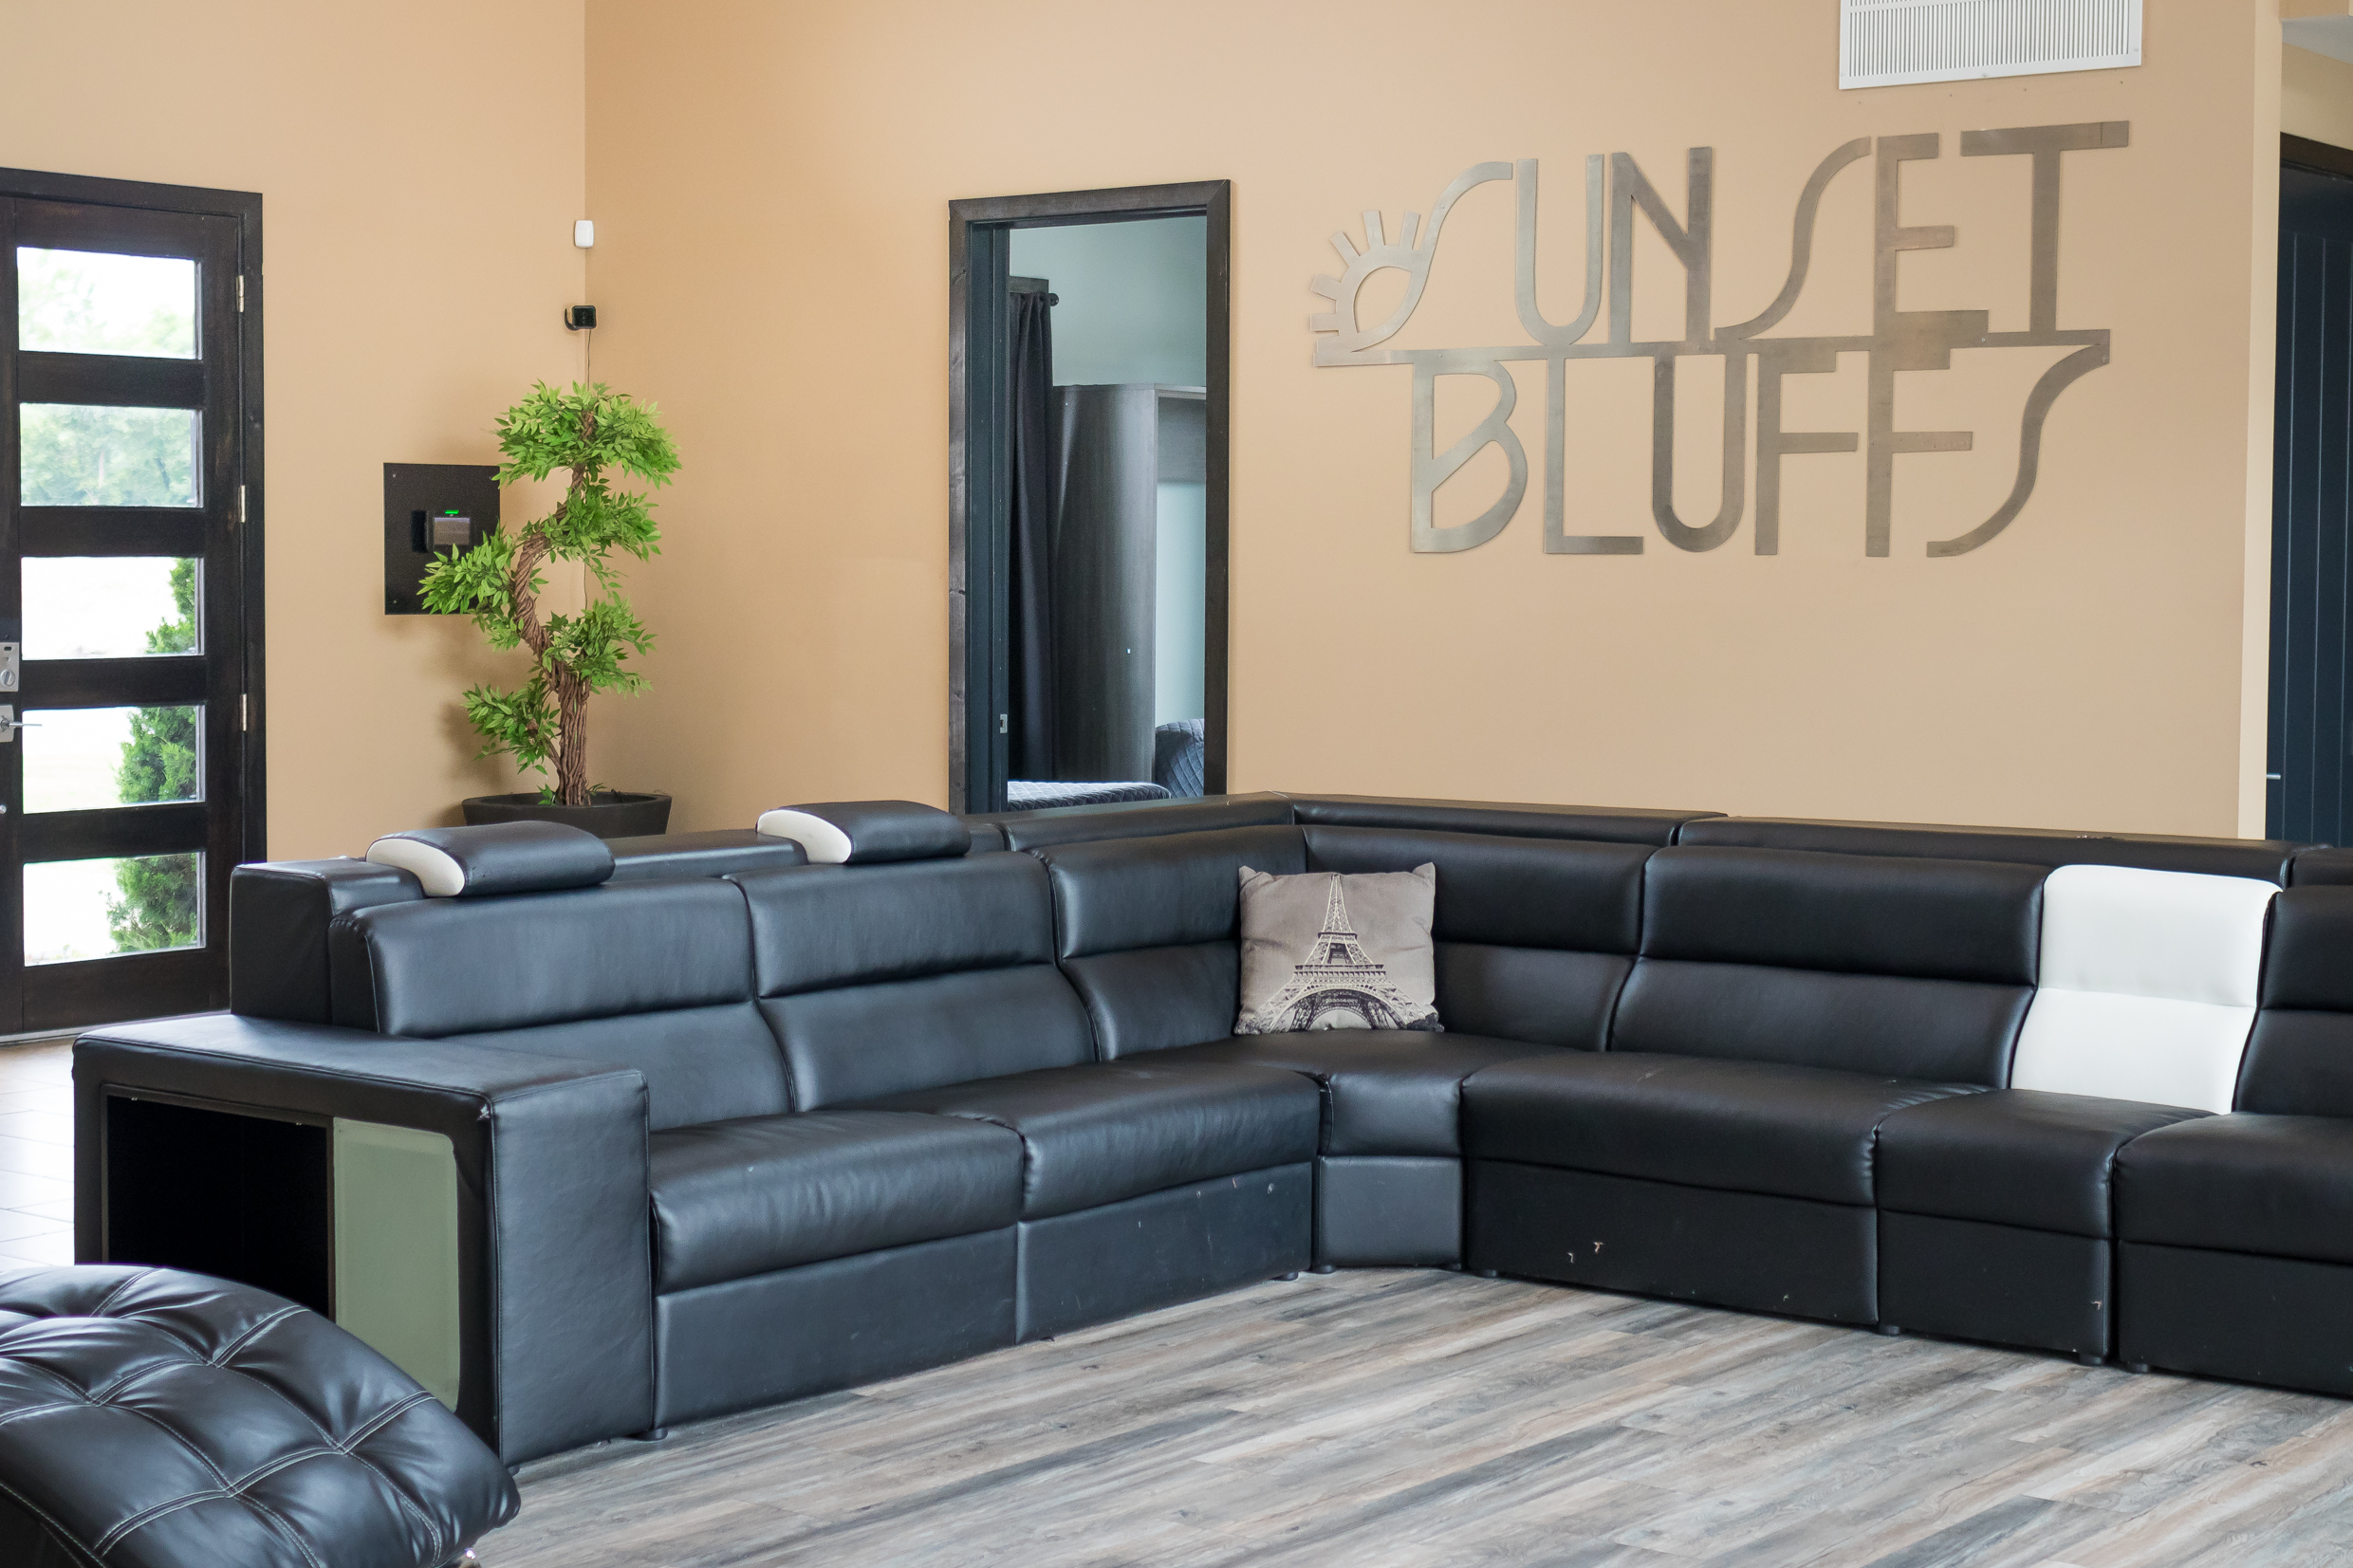 060719_Sunset_Bluffs_Evren_Interiors_Web (27 of 77).jpg